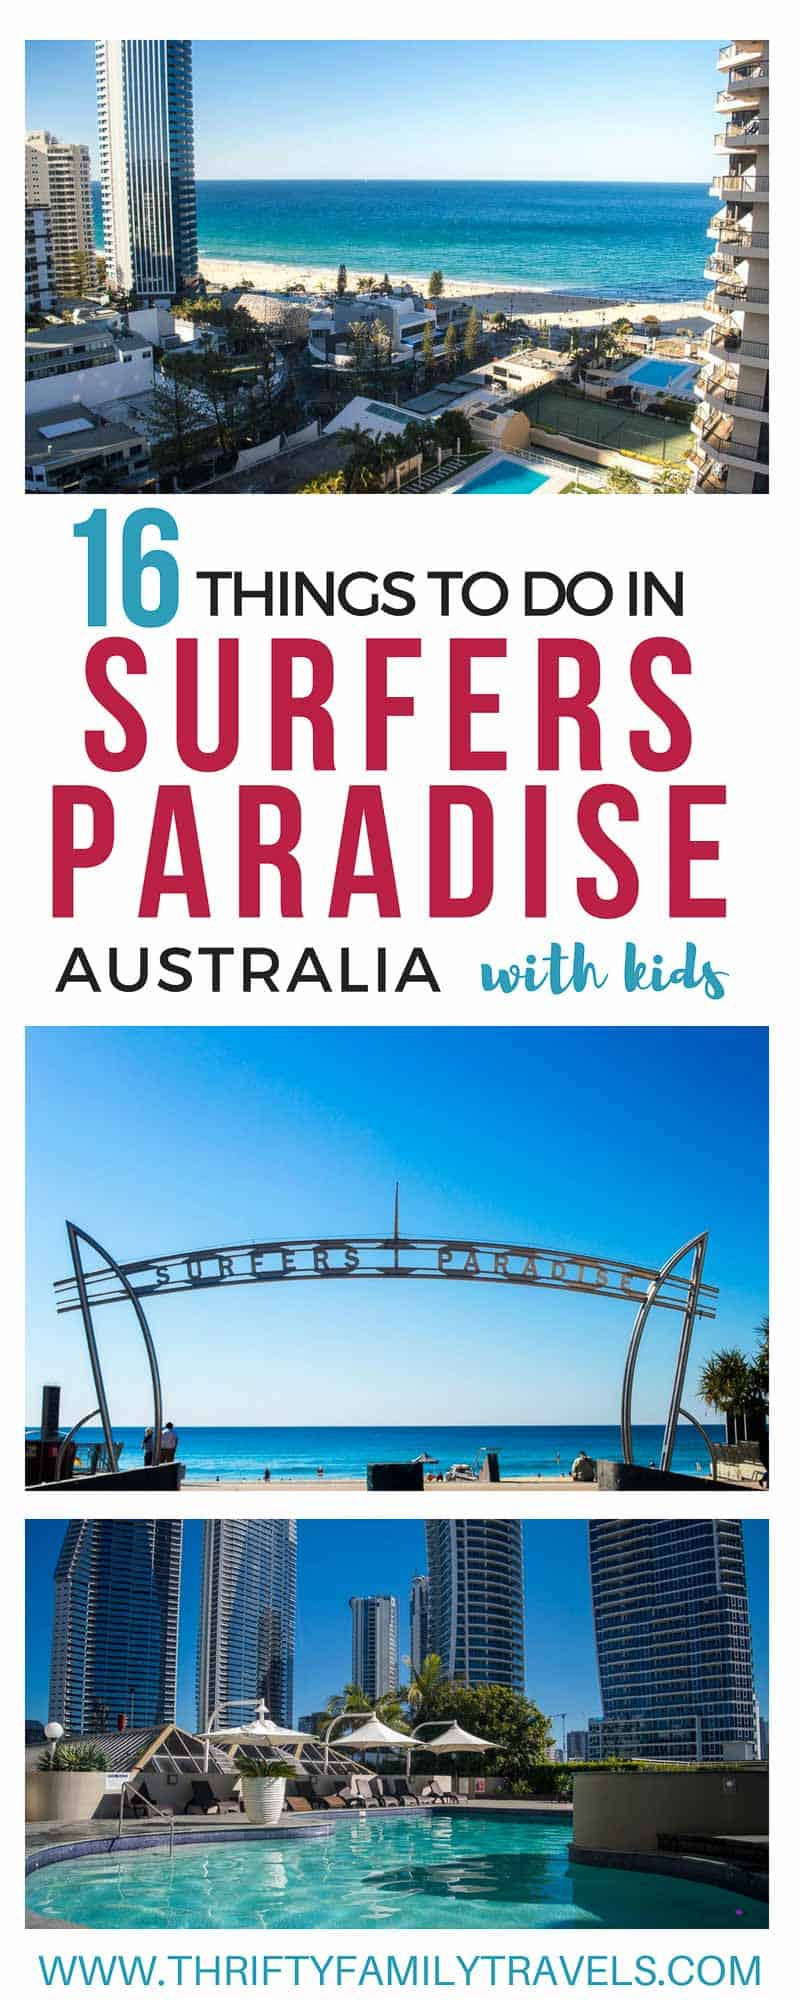 Best Things to do in Surfers Paradise with Kids